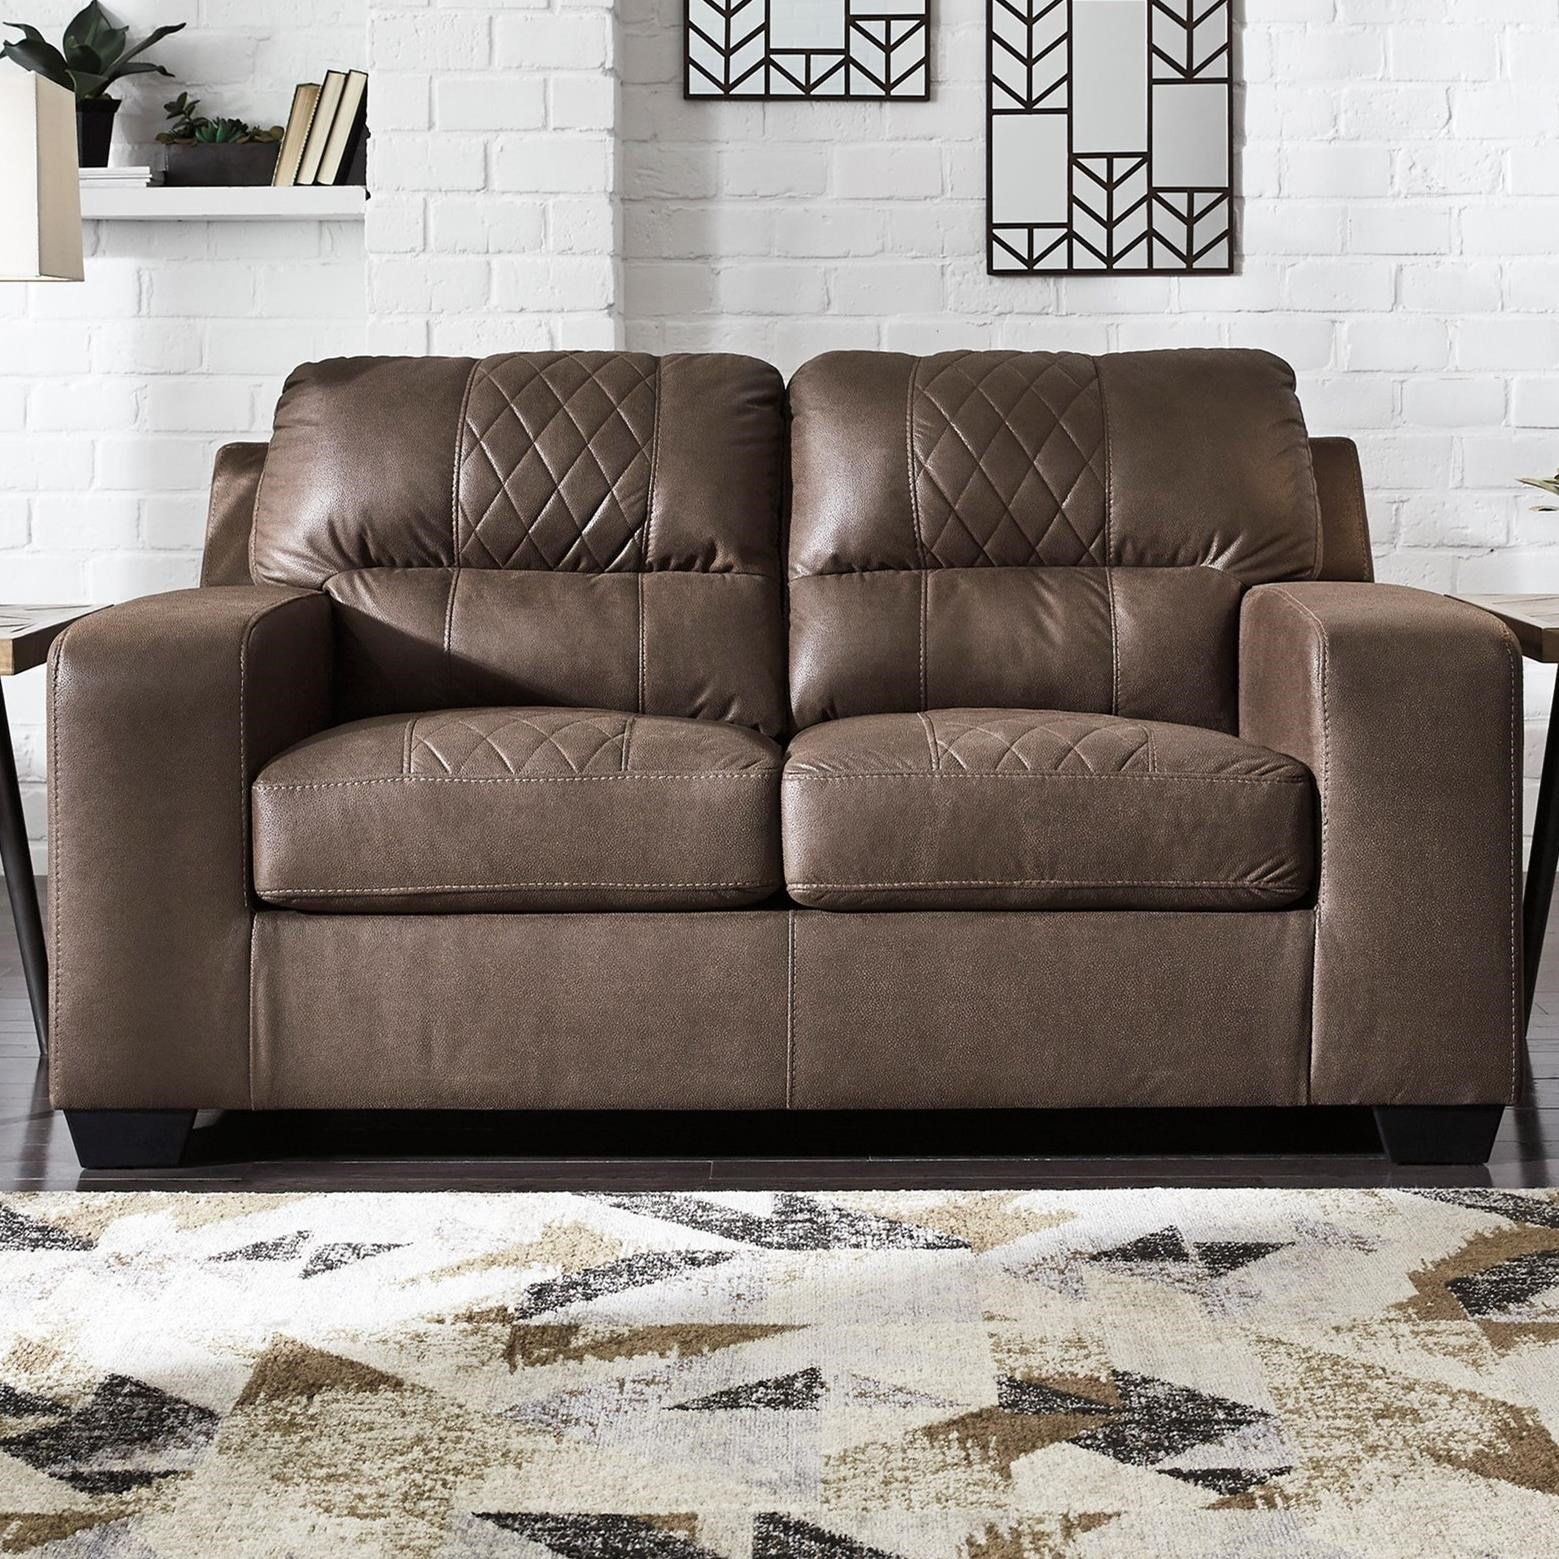 Terrific Narzole Contemporary Loveseat By Benchcraft By Ashley At Royal Furniture Home Interior And Landscaping Mentranervesignezvosmurscom